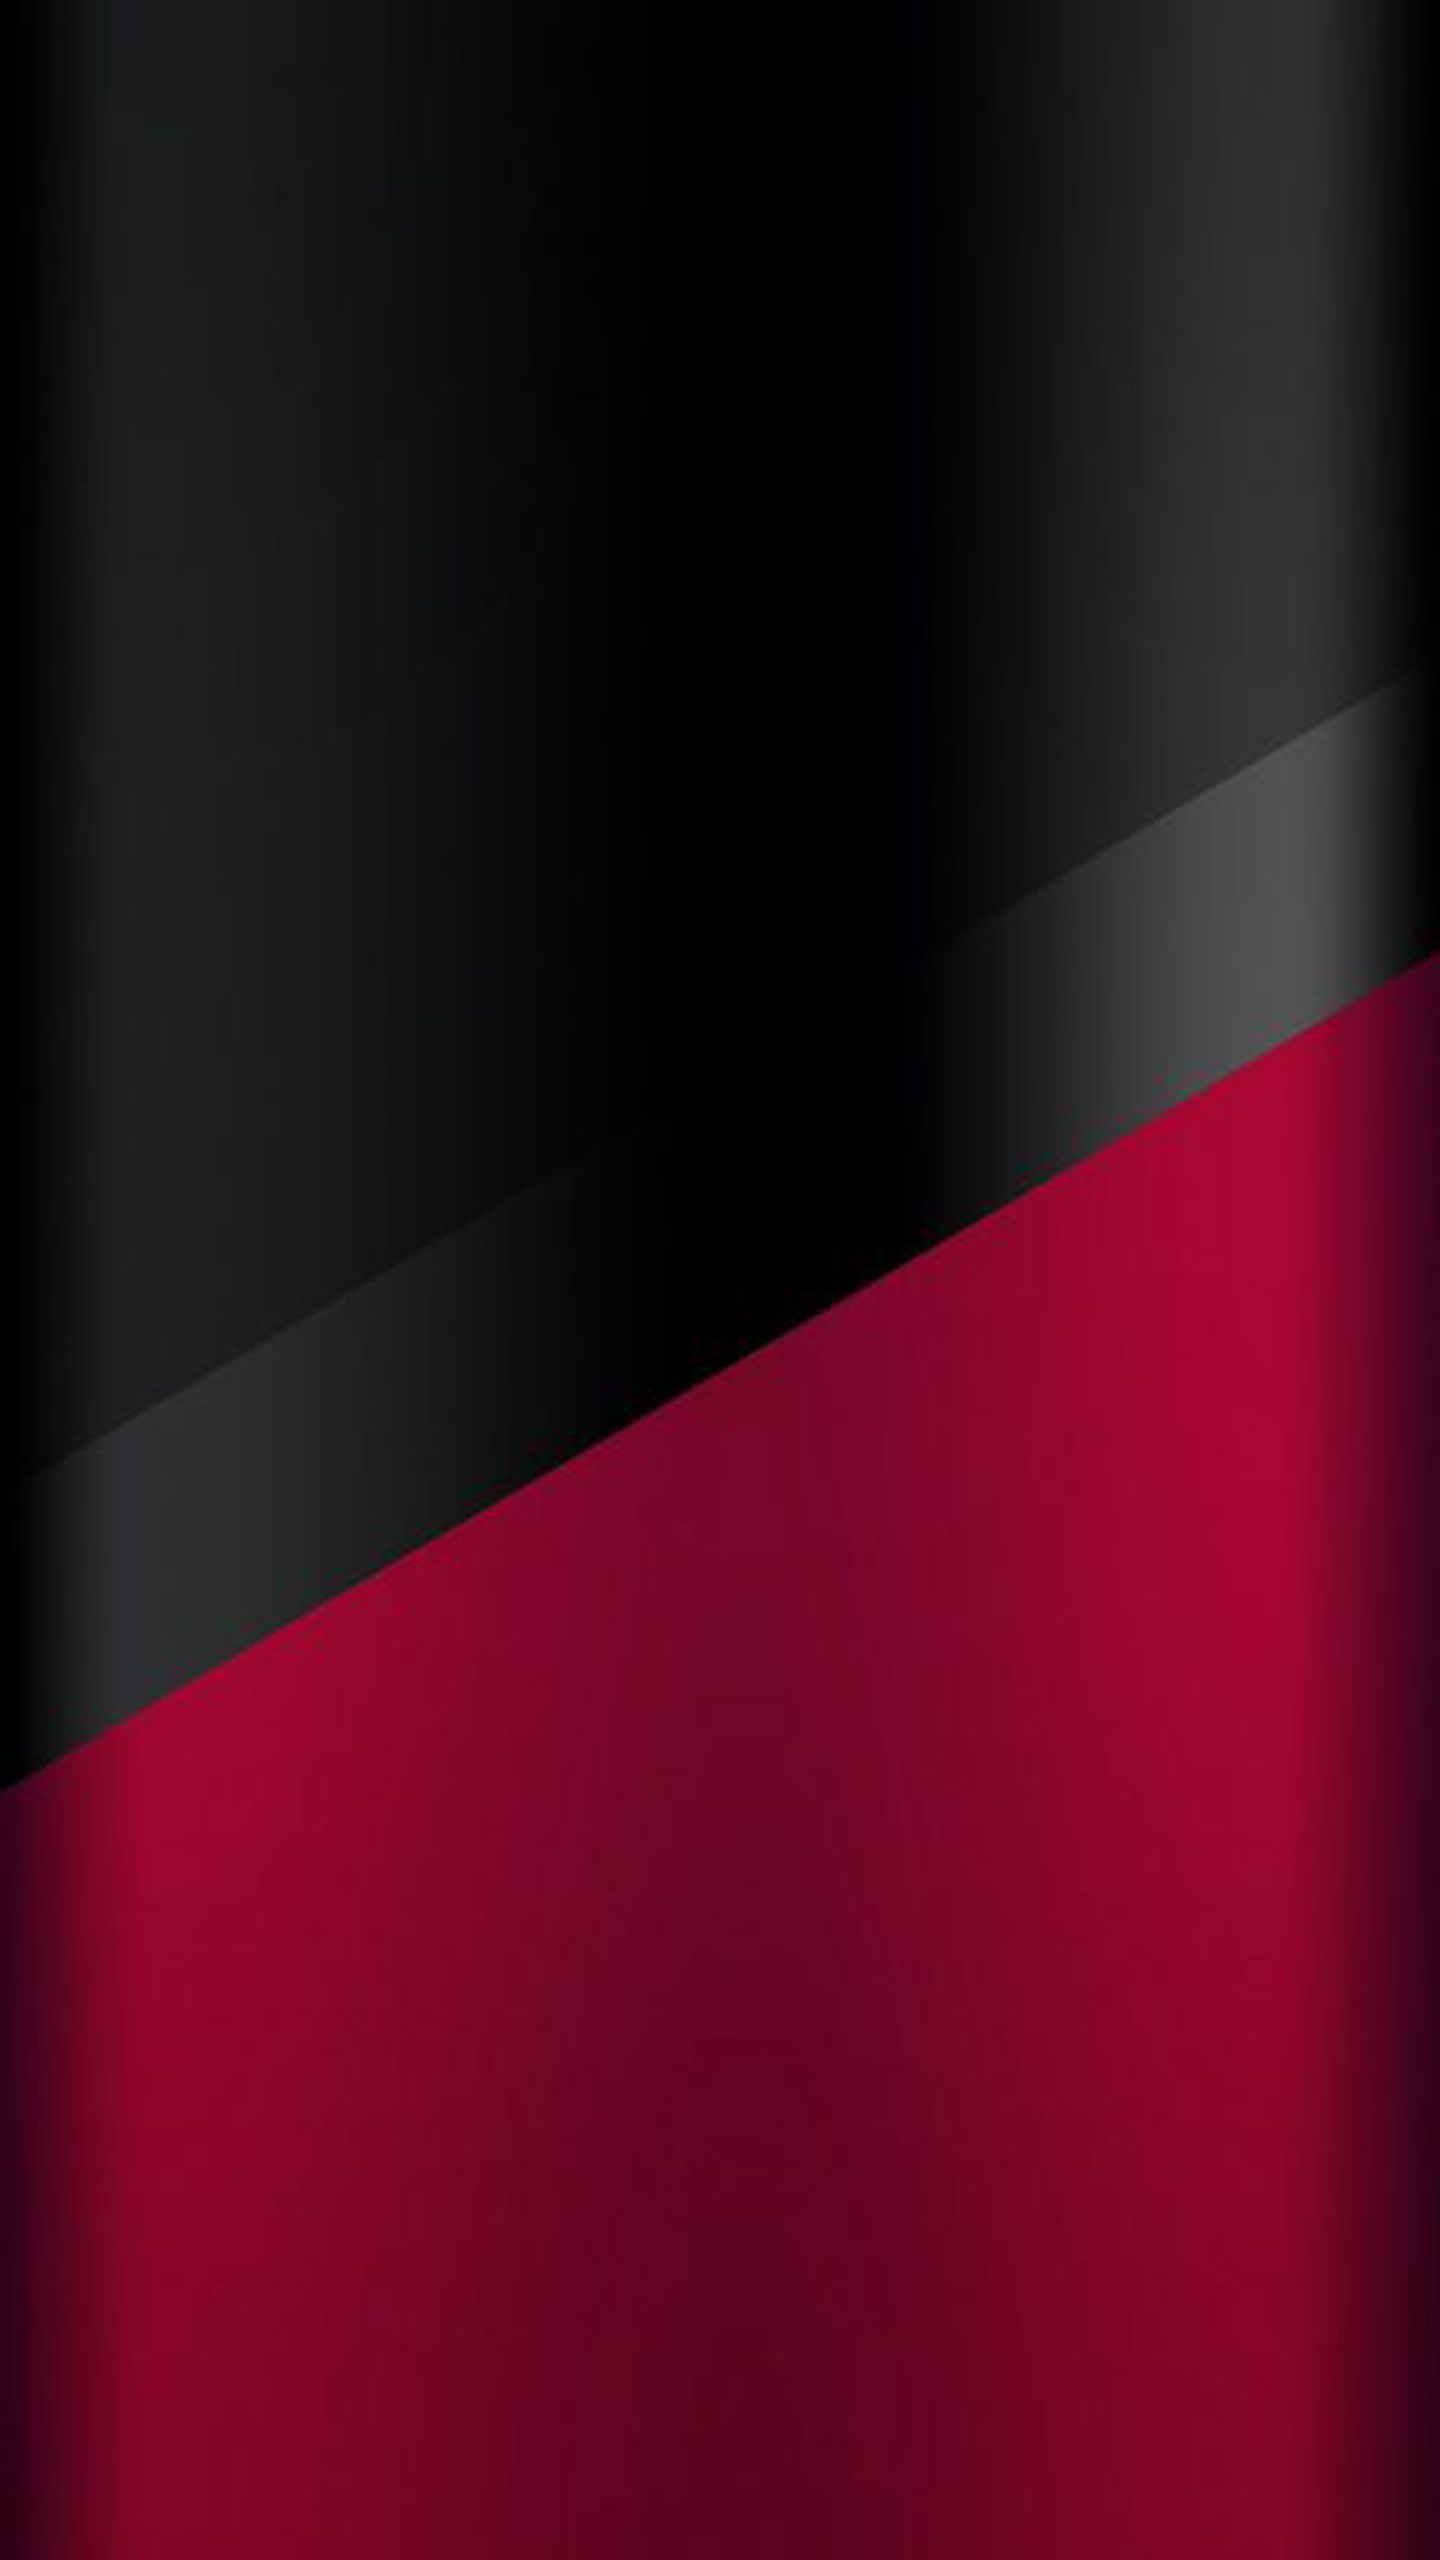 Dark S7 Edge Wallpaper 05 Black And Red Leather Pattern Hd Wallpapers Wallpapers Download High Resolution Wallpapers Samsung Wallpaper Red Colour Wallpaper Black Wallpaper